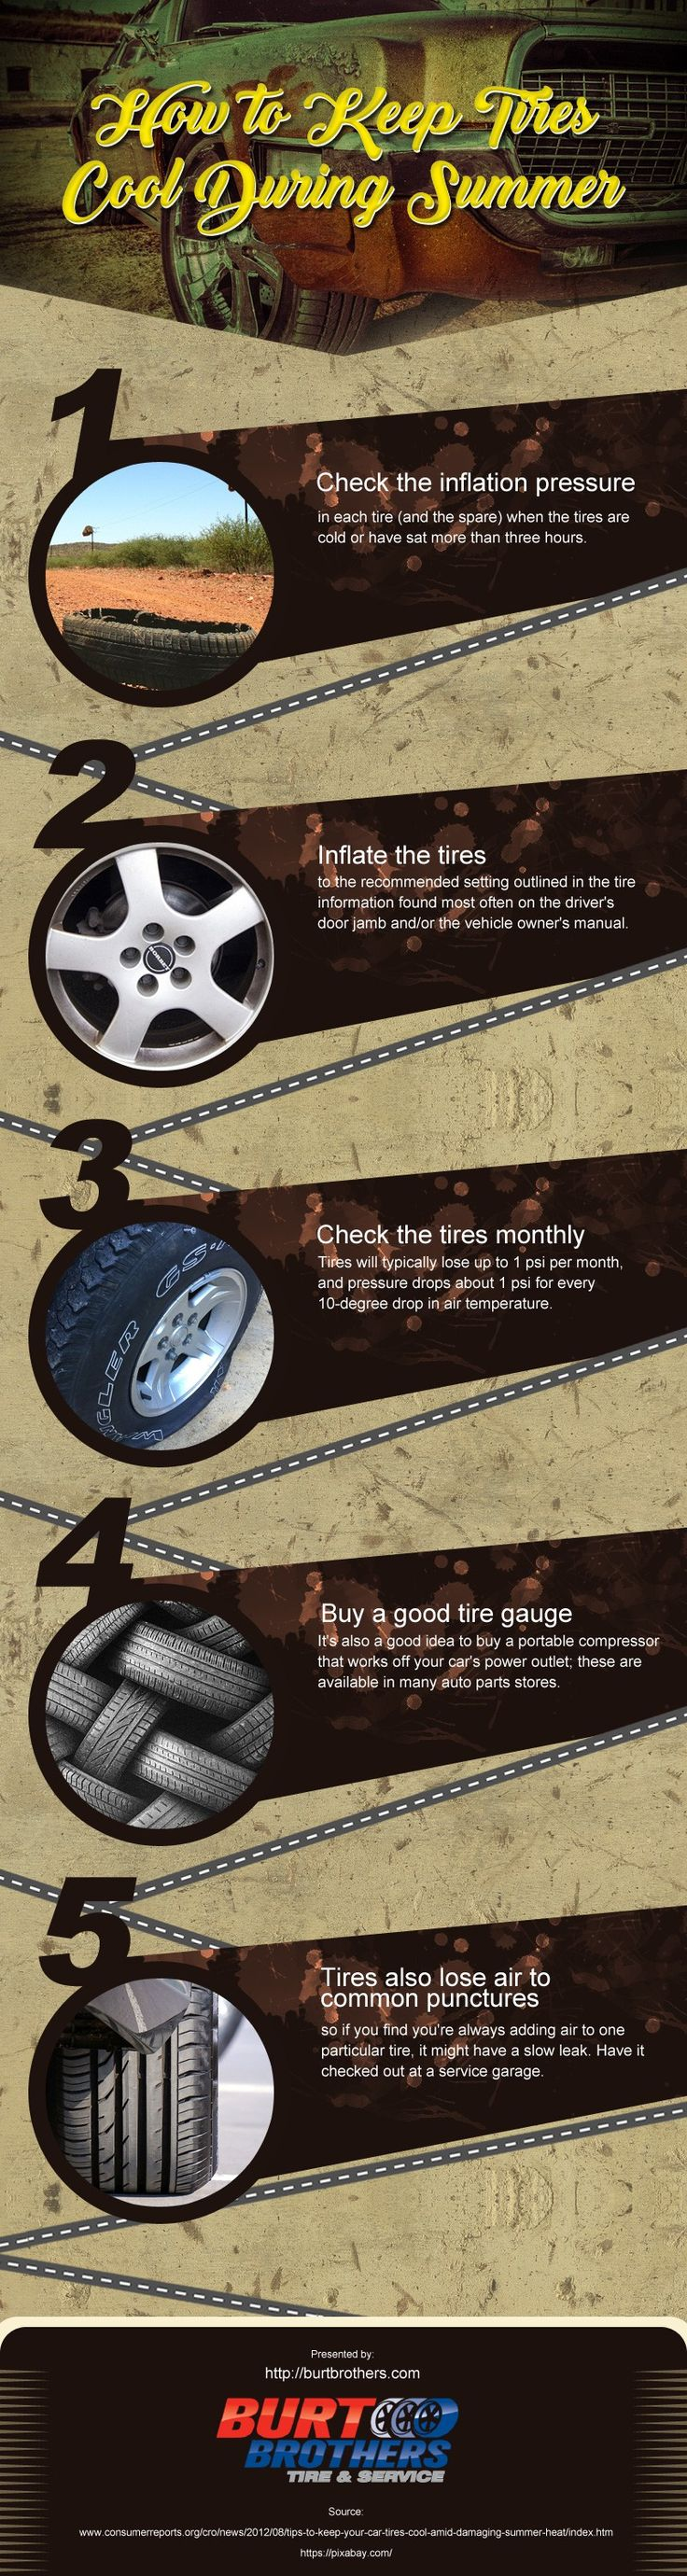 27 best fuel saving tips images on pinterest saving tips saving money and fuel efficiency